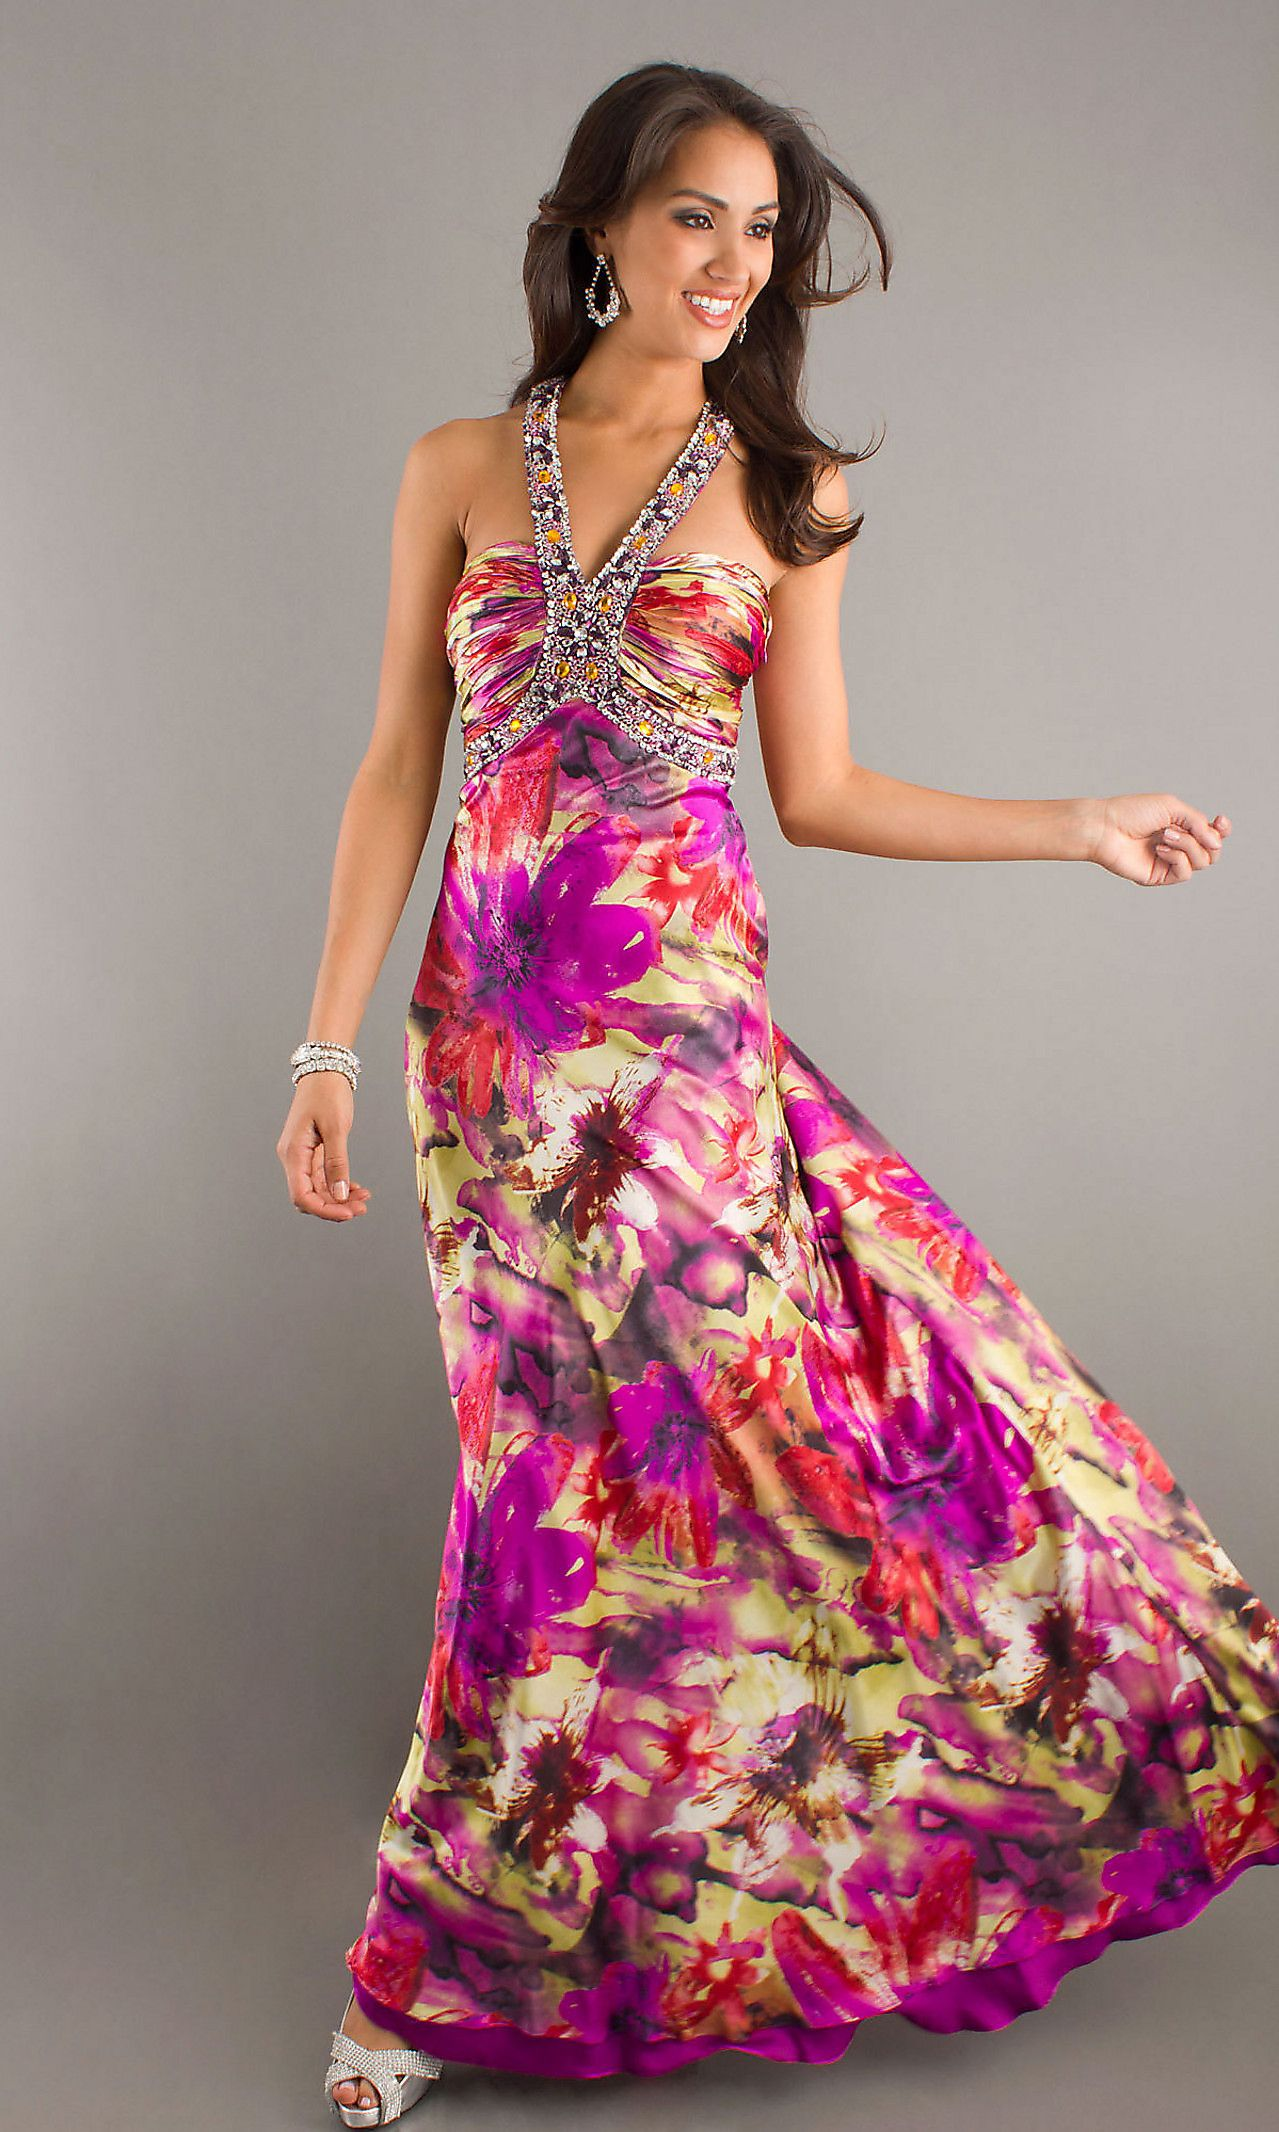 I love the pink colors of this dress if only pinterest